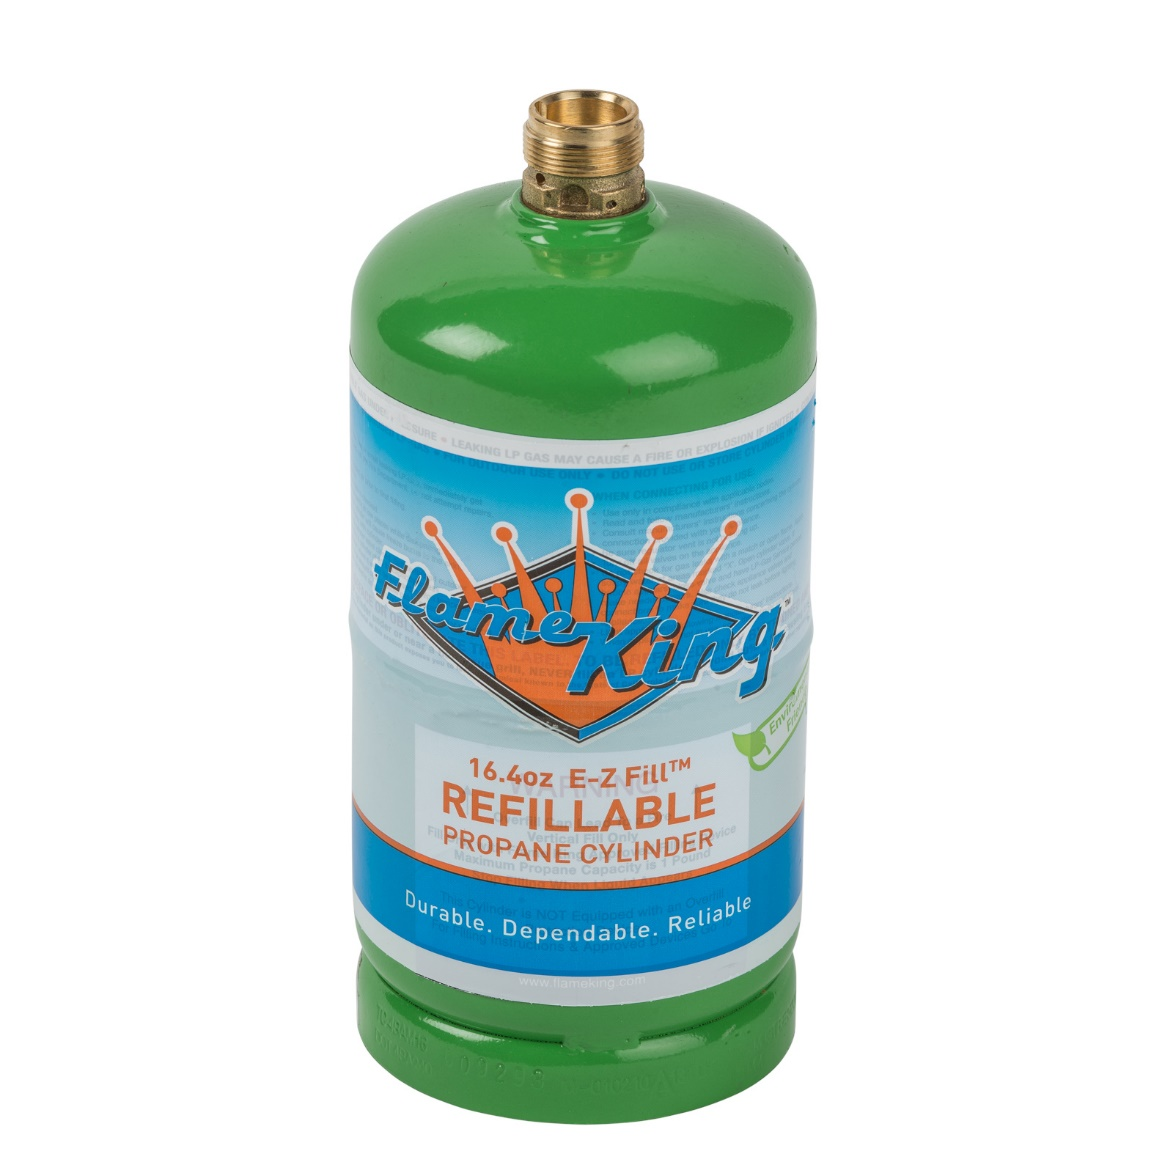 Flame King 16.4 oz. refillable propane cylinder